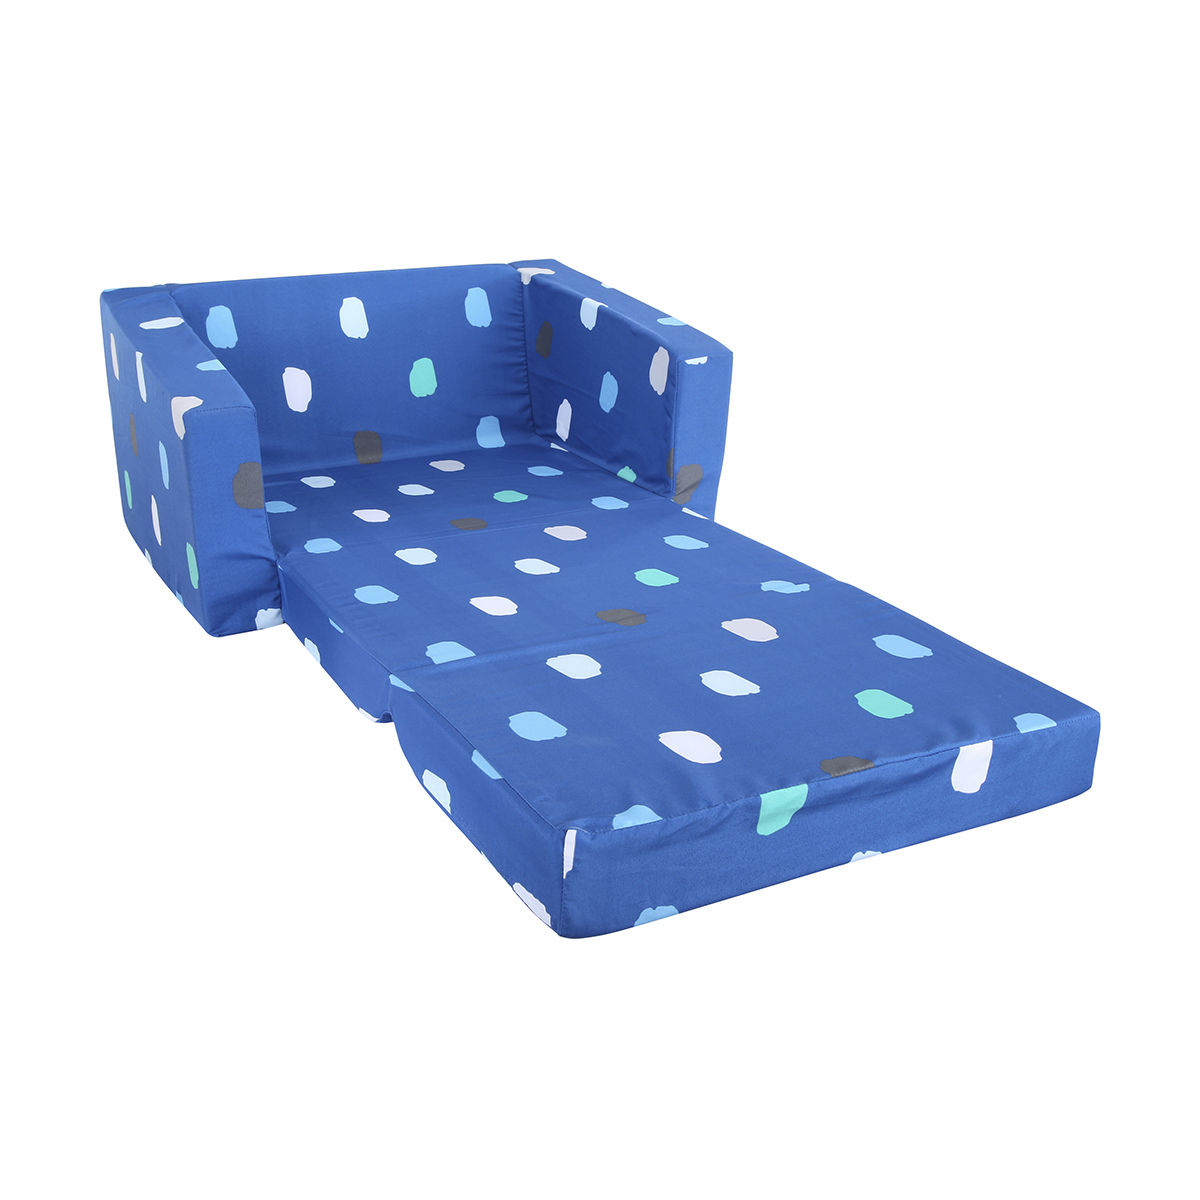 fresh kids flip out sofa construction-Contemporary Kids Flip Out sofa Collection